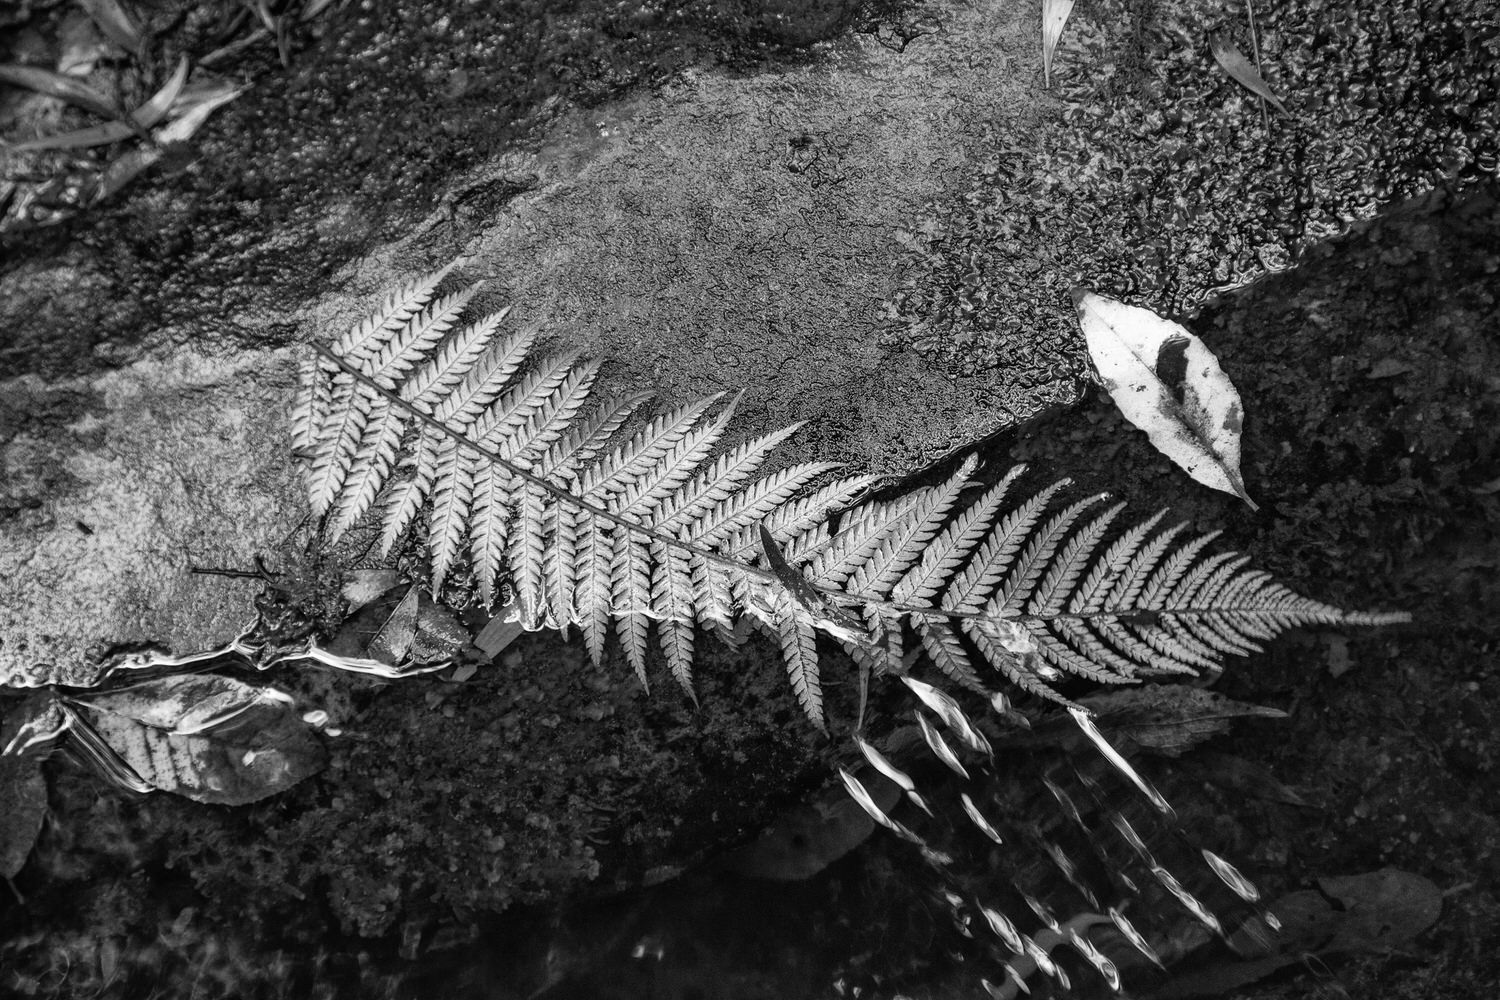 A close-up image of a    fern    by the banks of the    Erskine River    near Lorne, Australia.